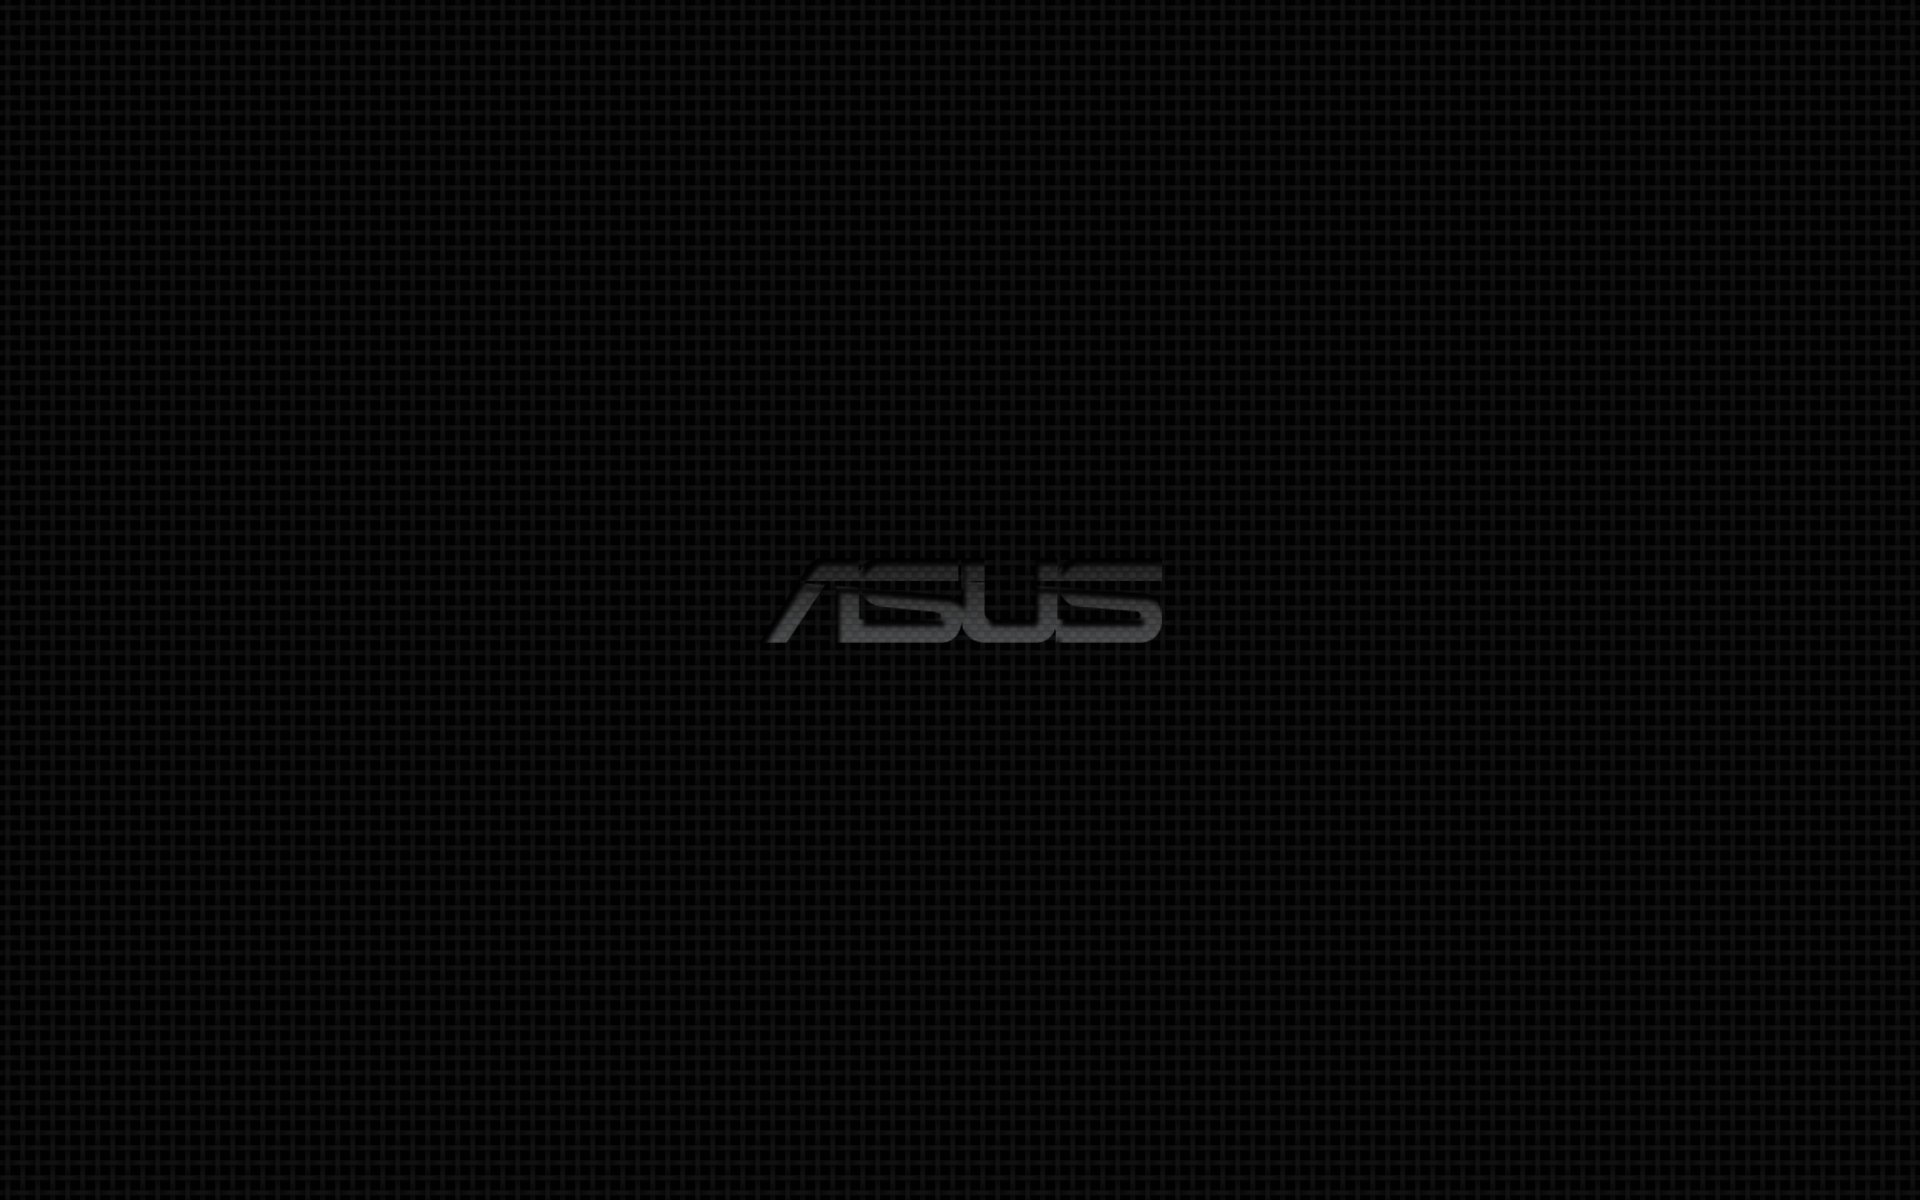 44 ] ASUS Wallpaper Full HD On WallpaperSafari